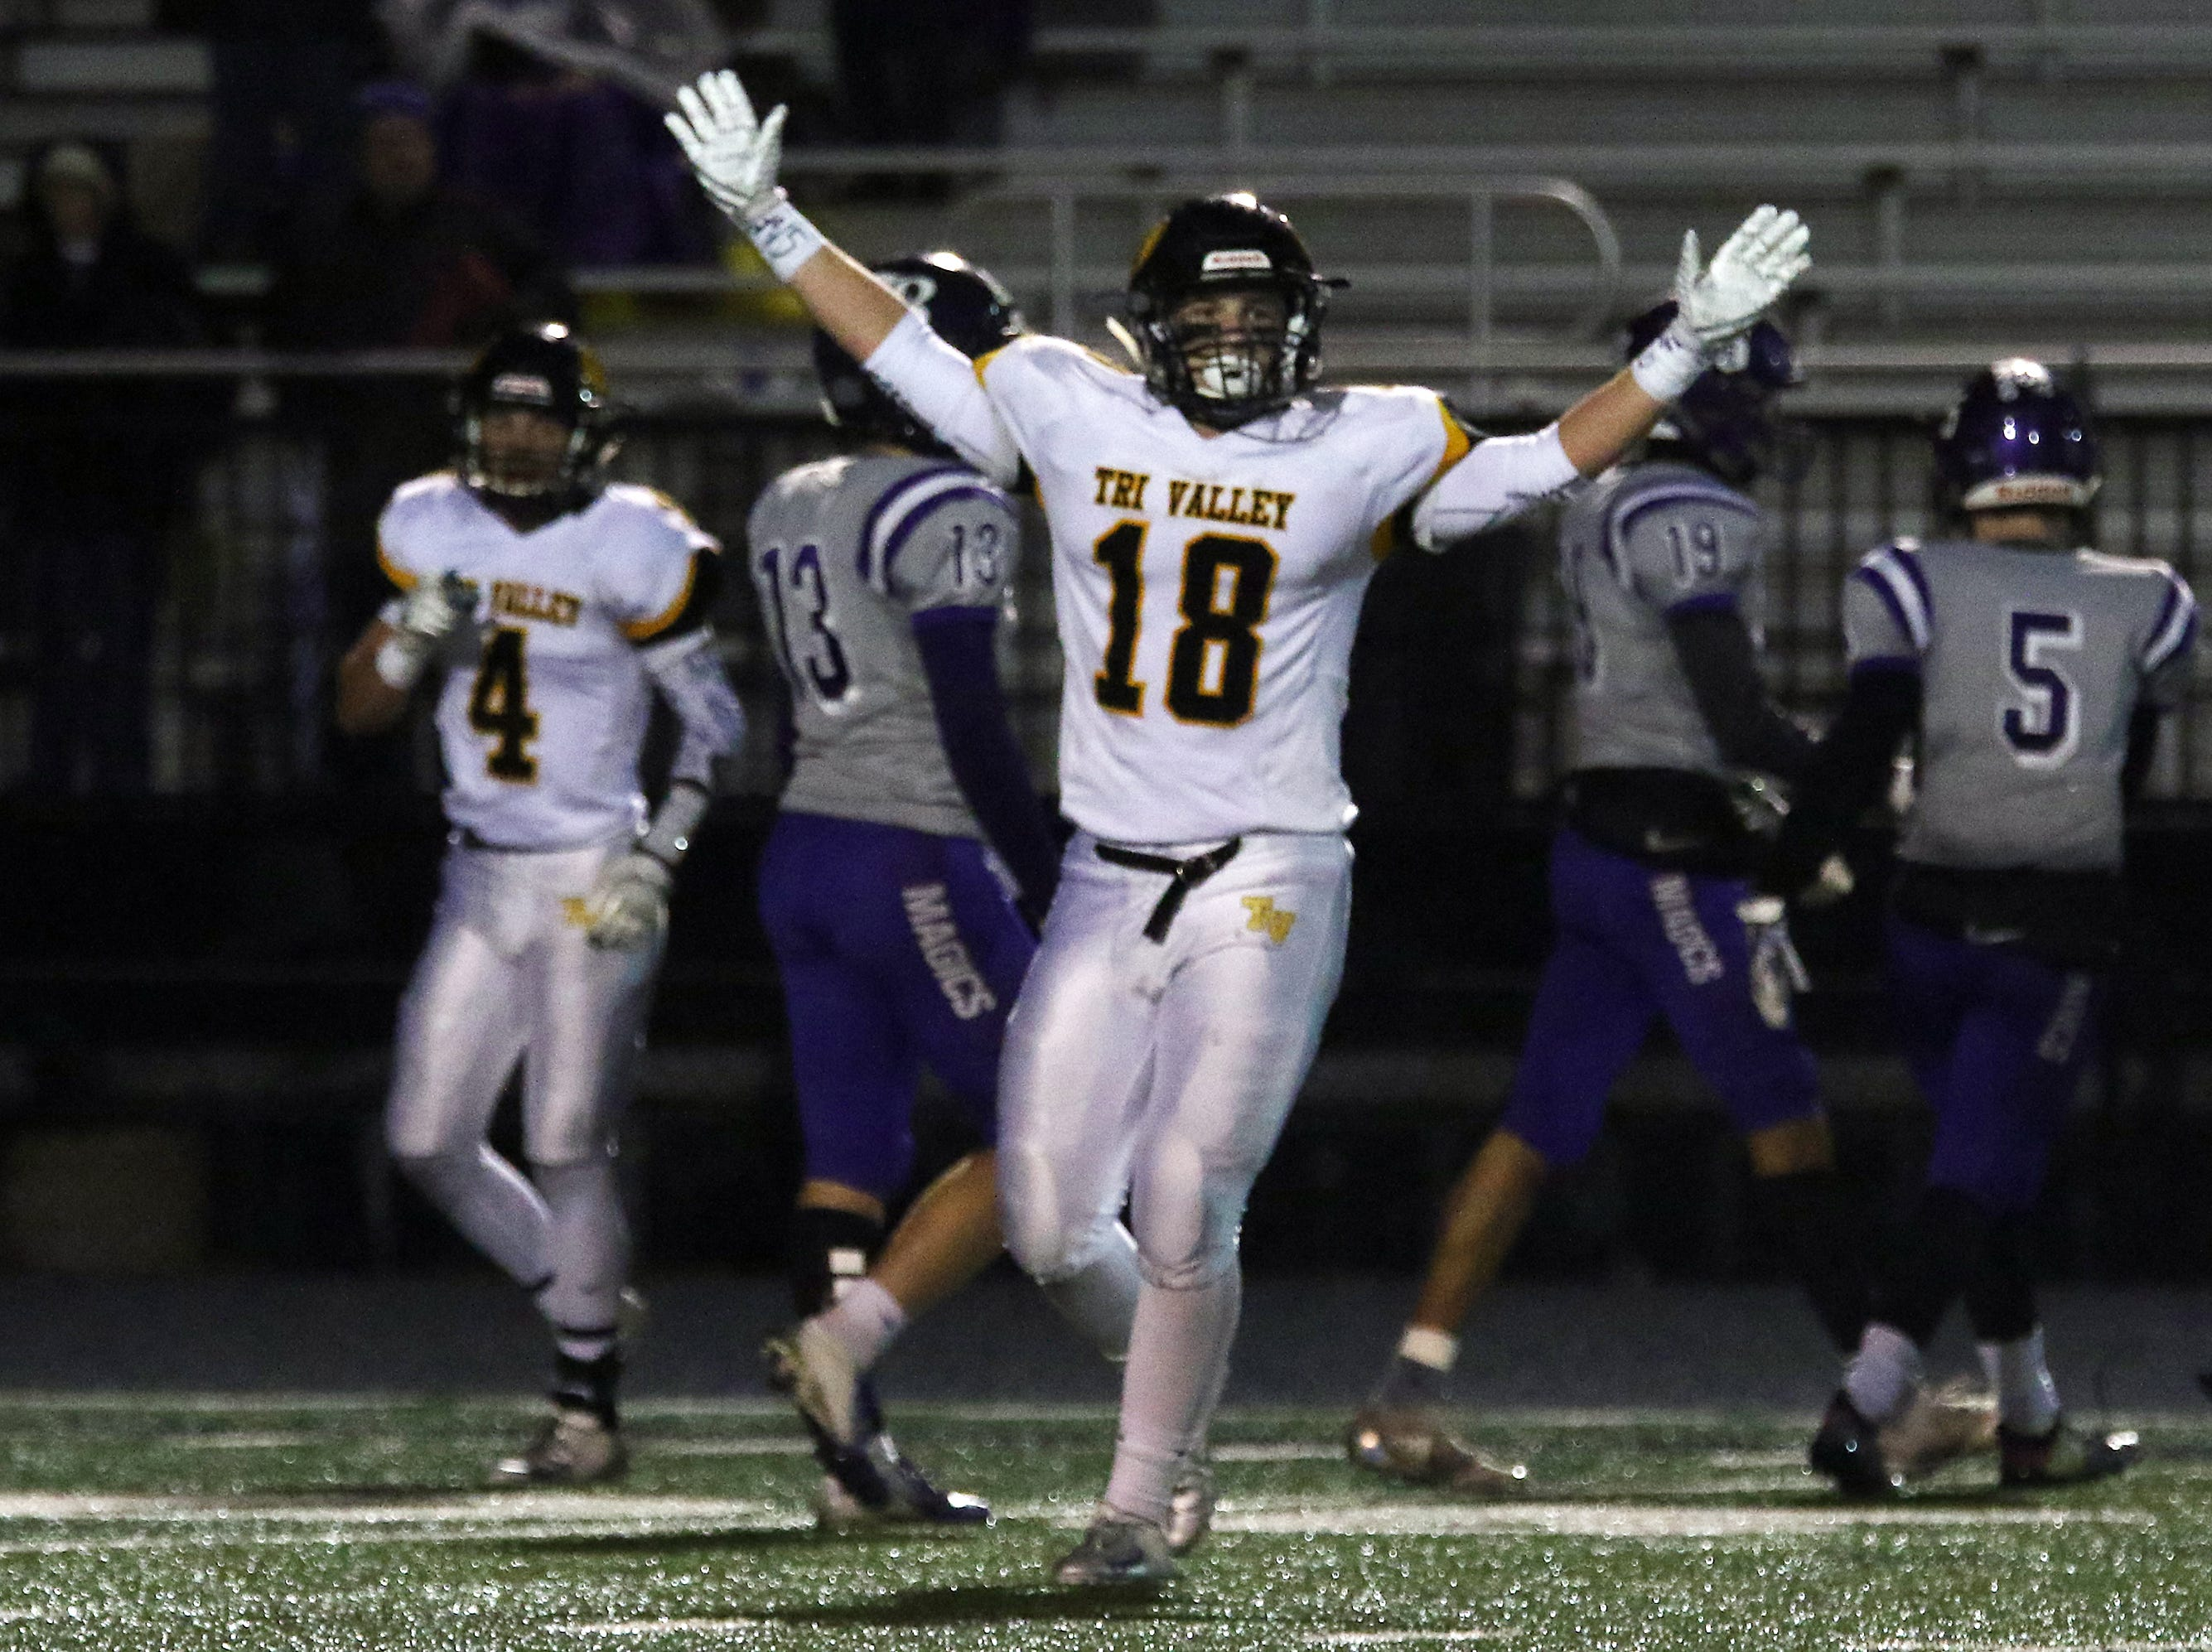 Tri-Valley's Cy Burkhart raises his arms after Tri-Valley stopped Barberton's final drive.